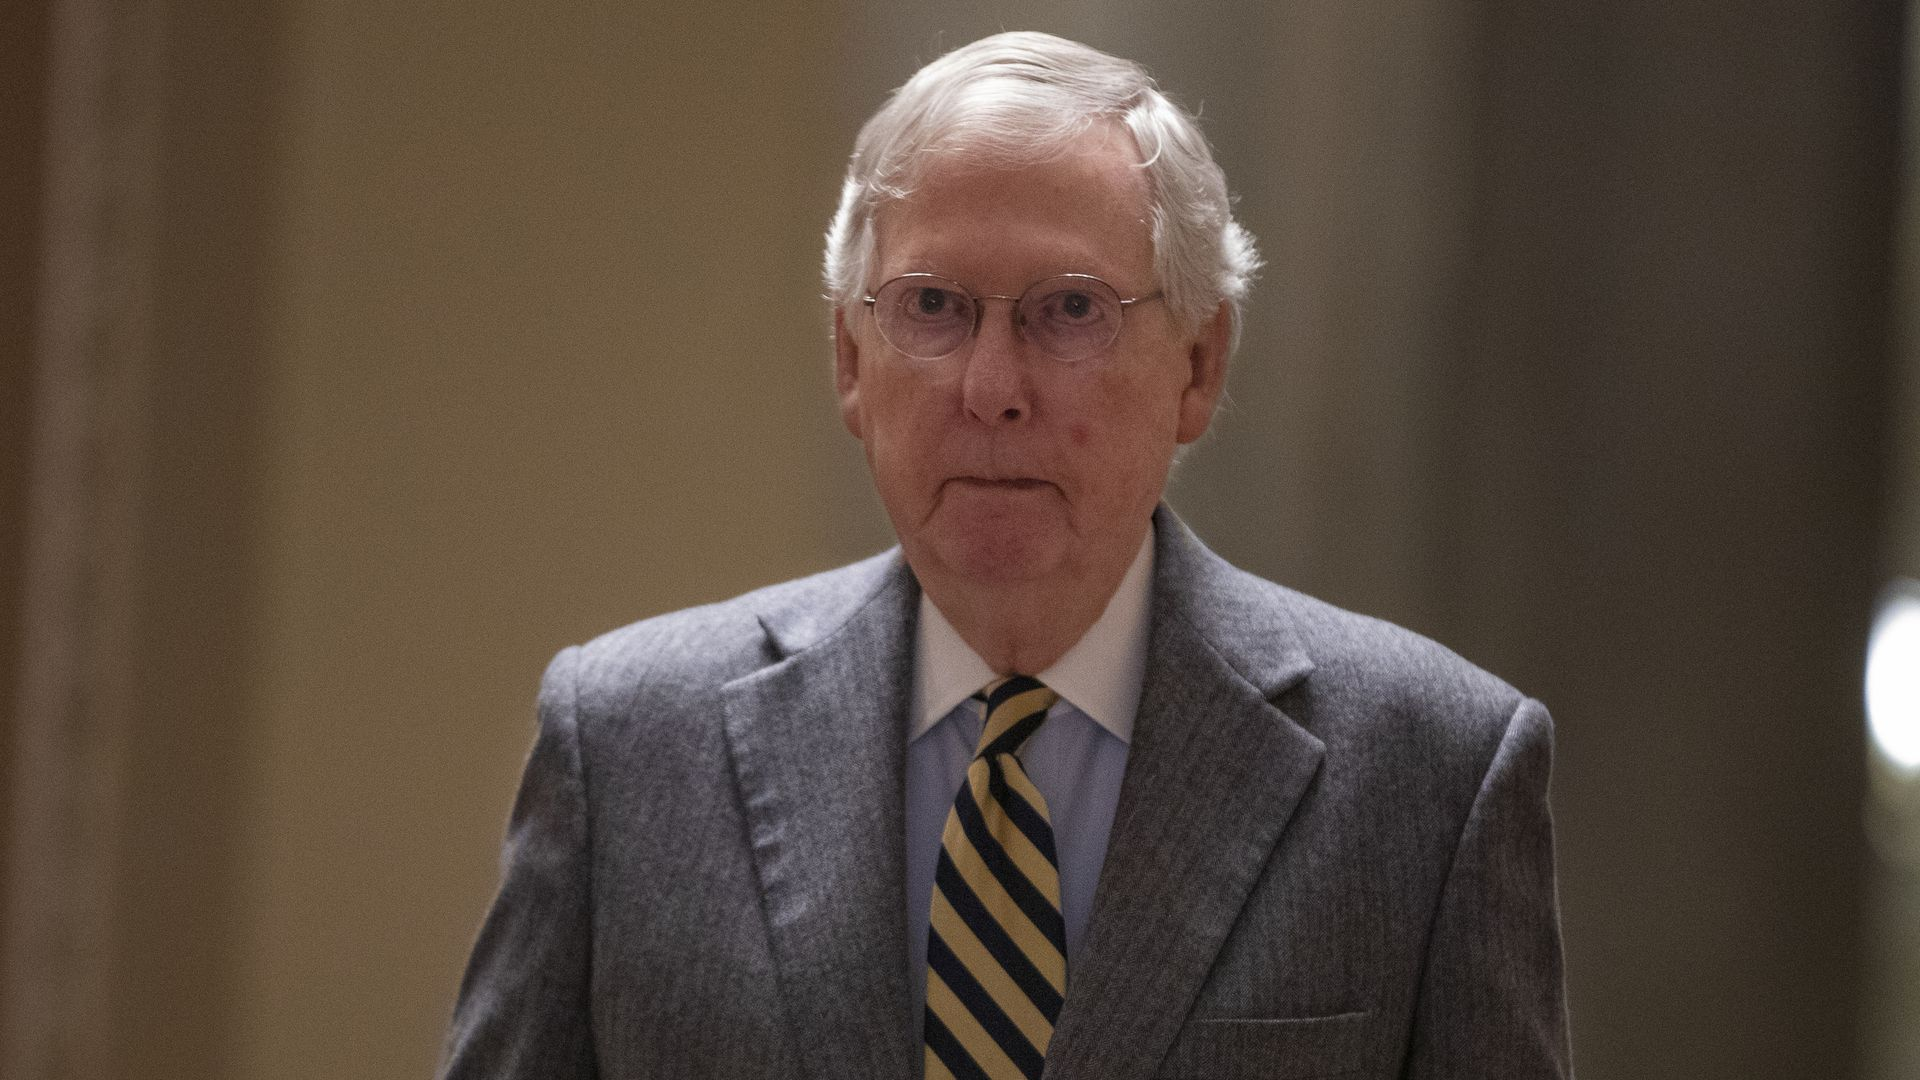 Exclusive: New group to focus on McConnell attacks